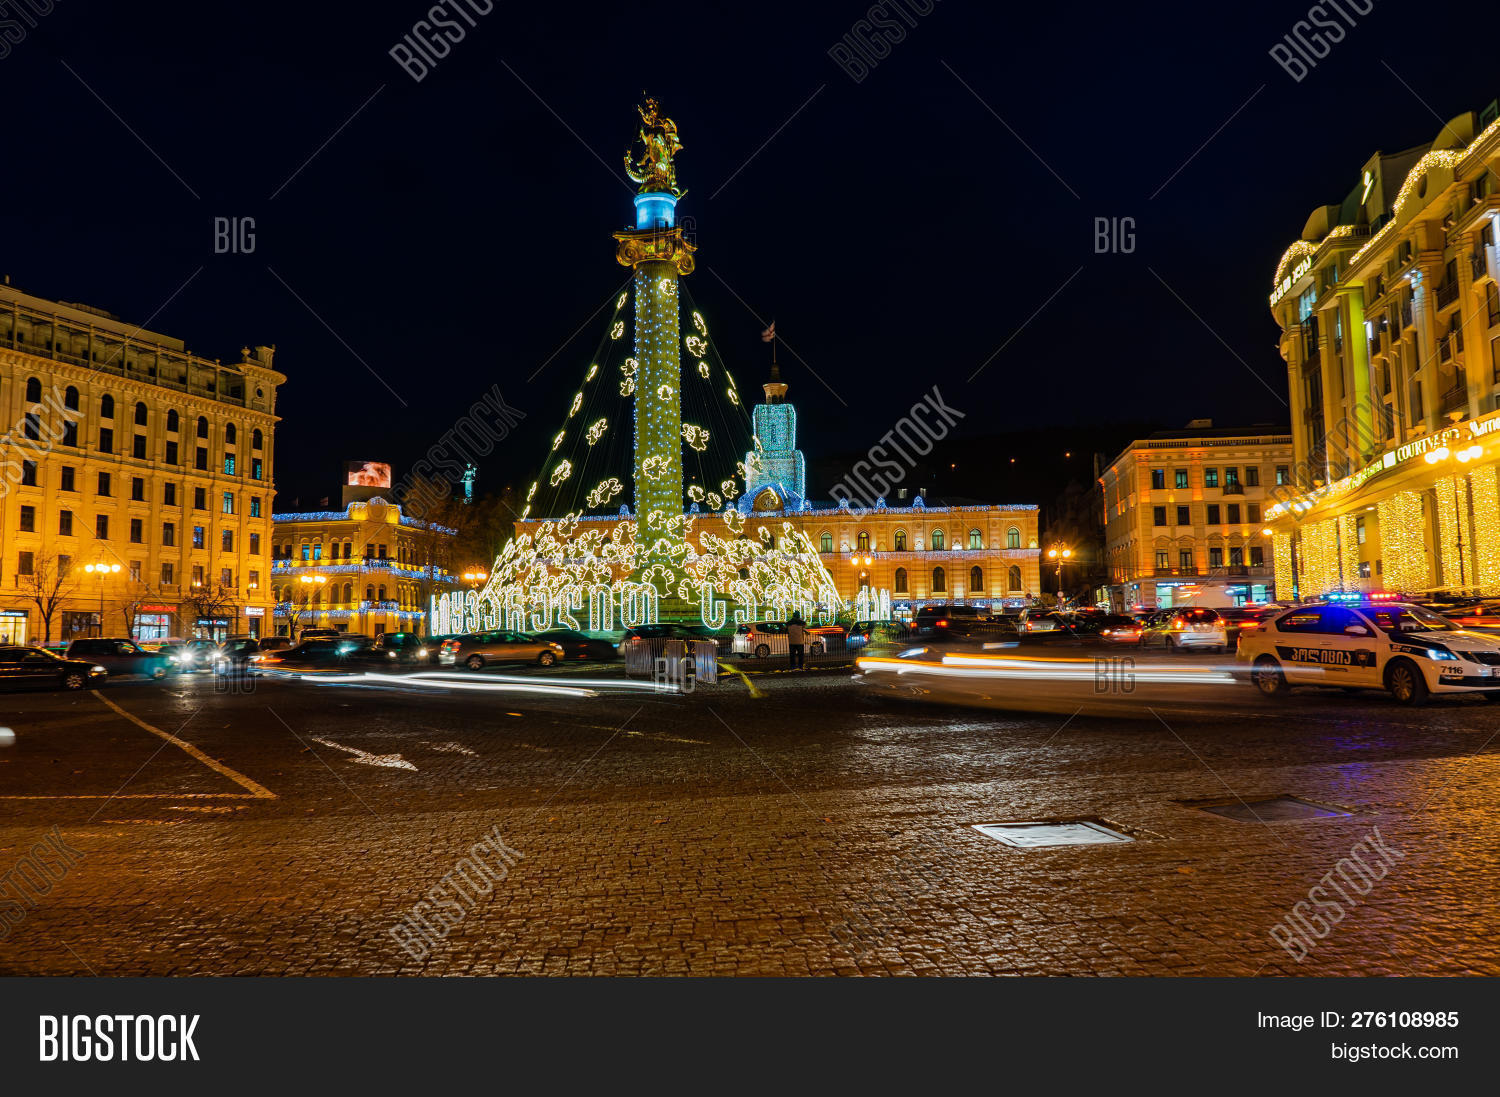 Christmas In Georgia Tbilisi.Christmas Illumination Image Photo Free Trial Bigstock